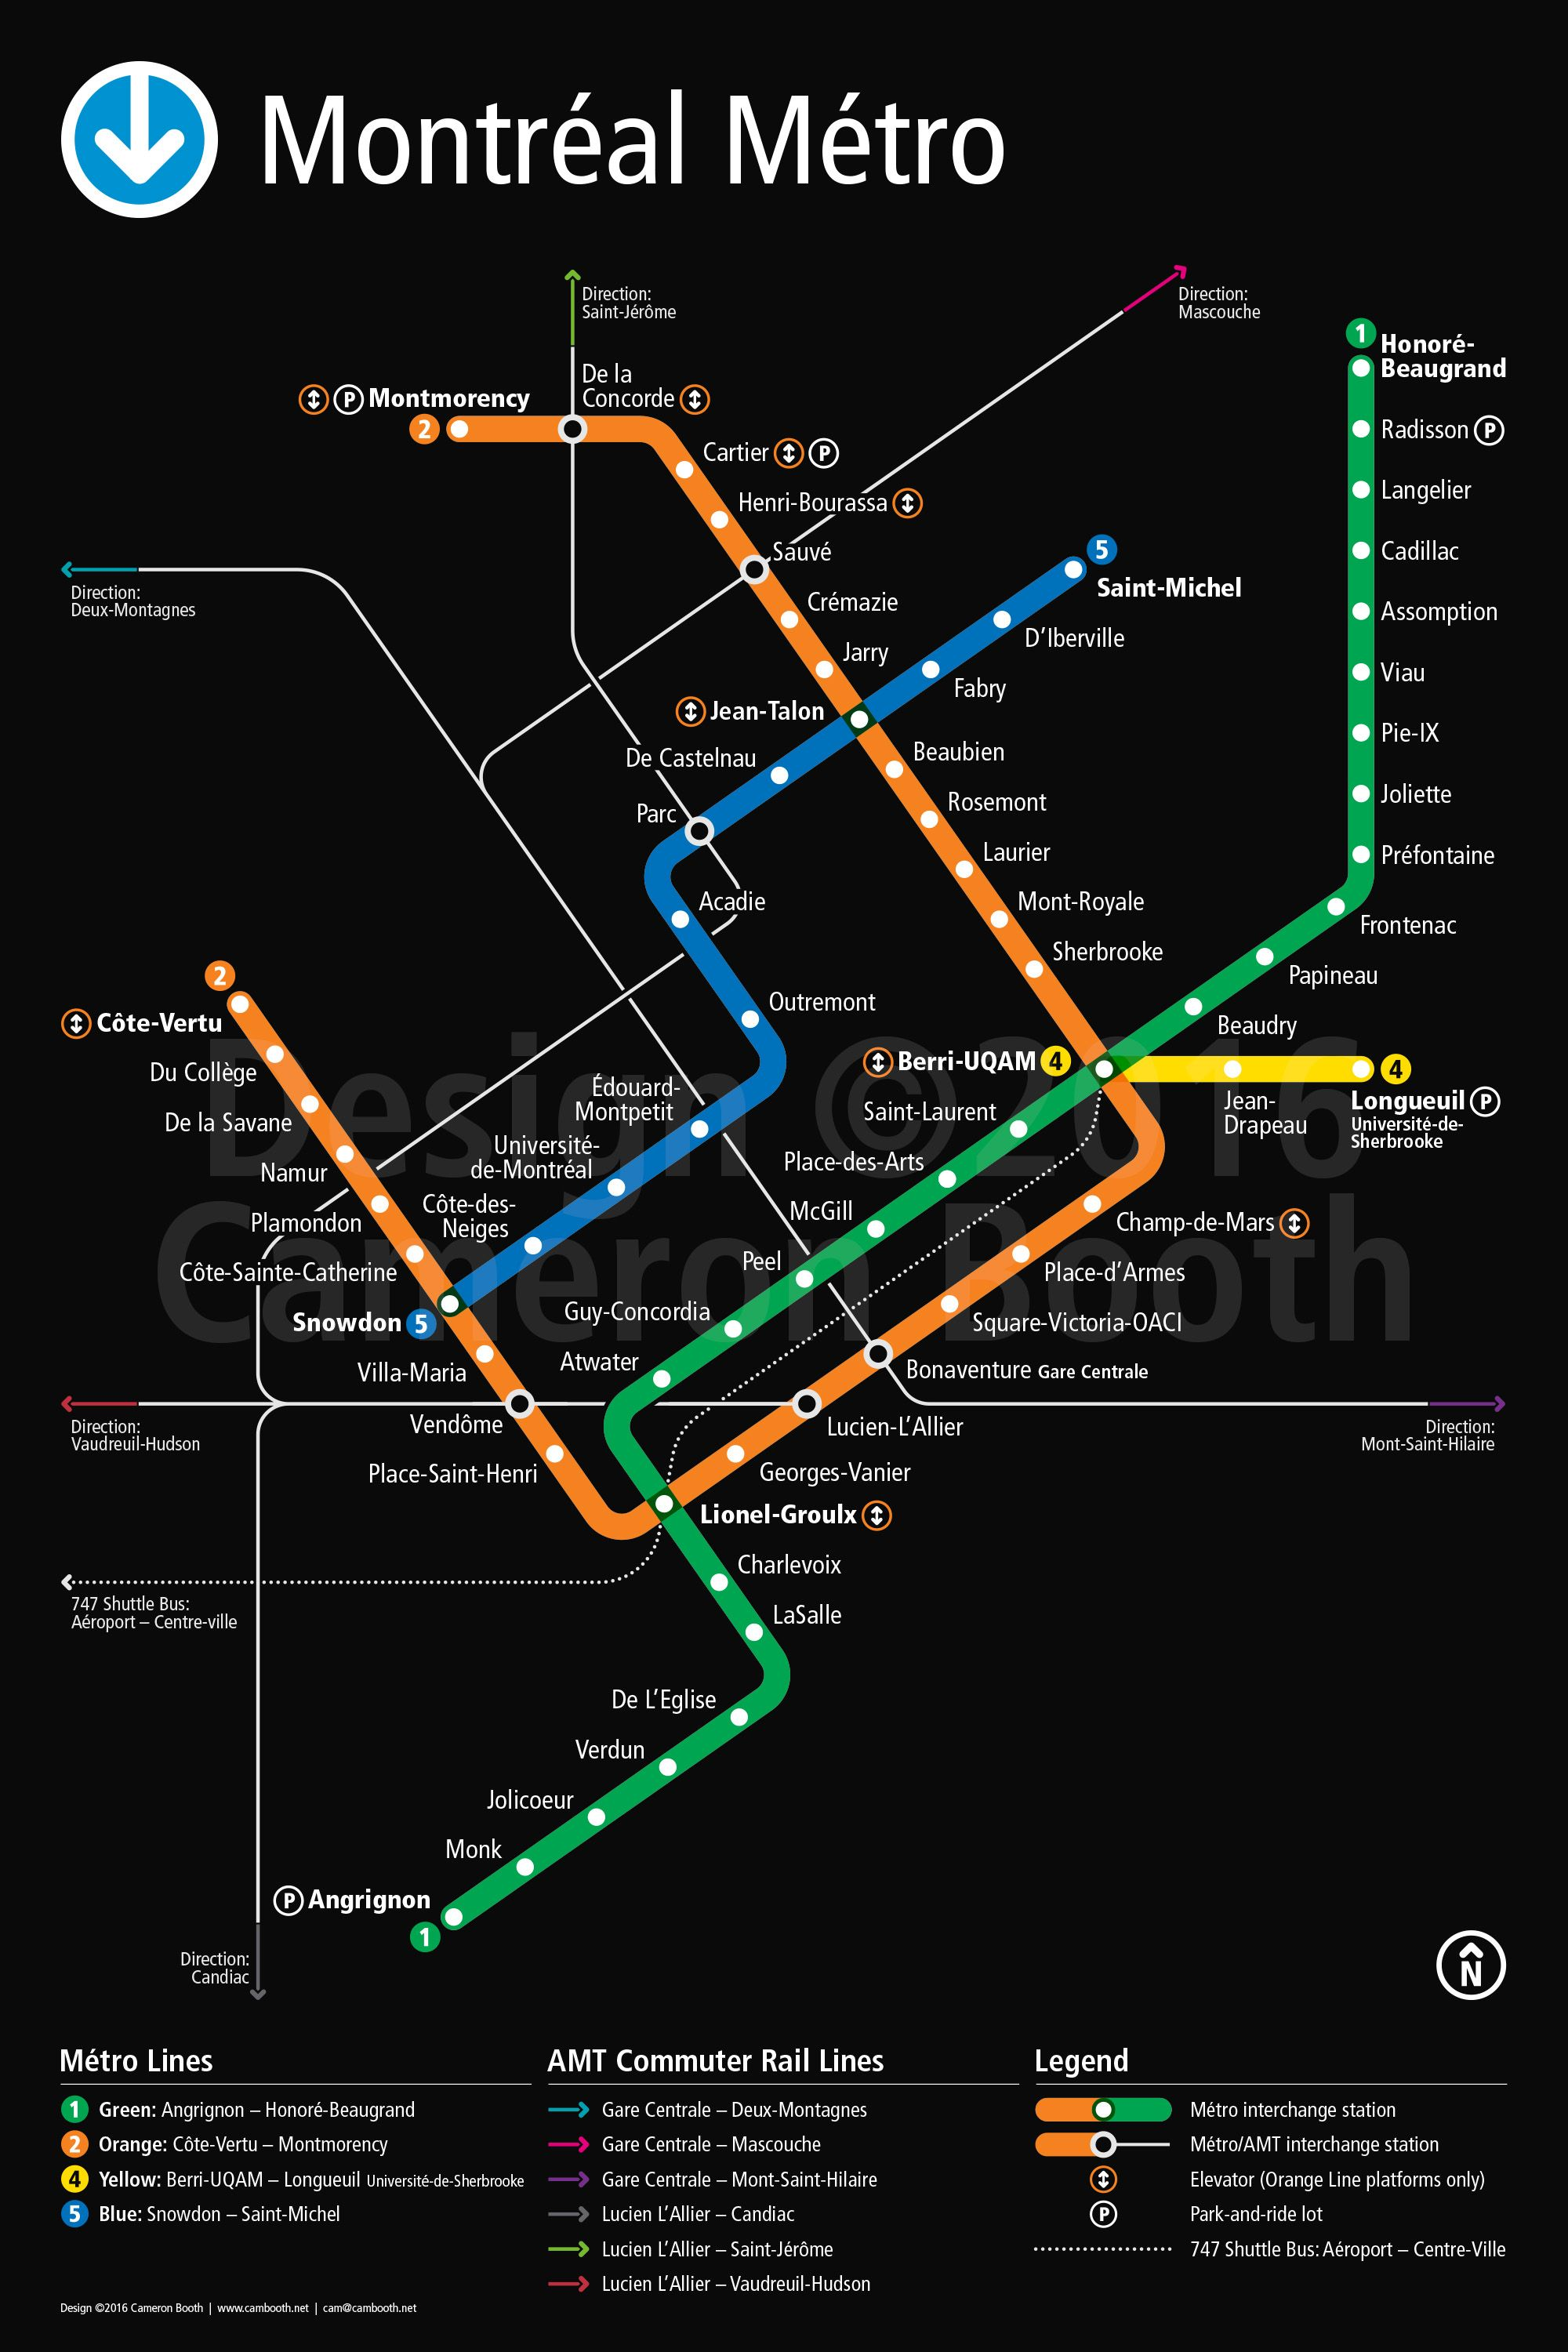 Subway Map Montreal Canada Montreal Metro Map – Large | Metro map, Subway map, Subway map design